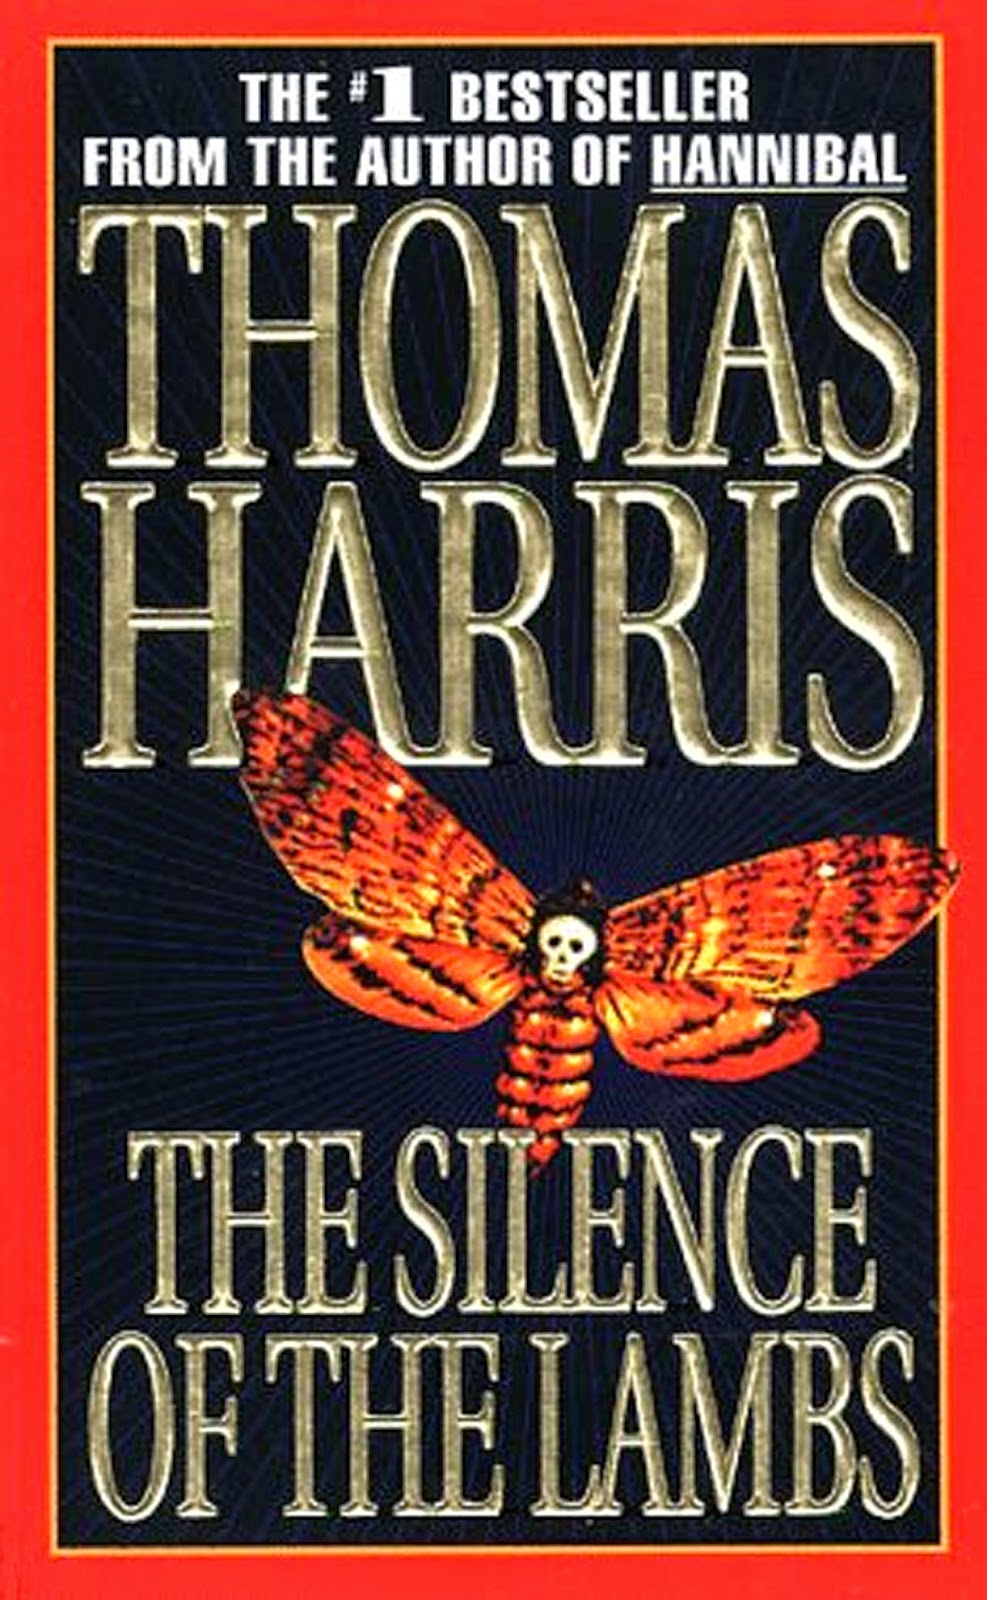 Silence of The Lambs Book | eBay |The Silence Of The Lambs Book